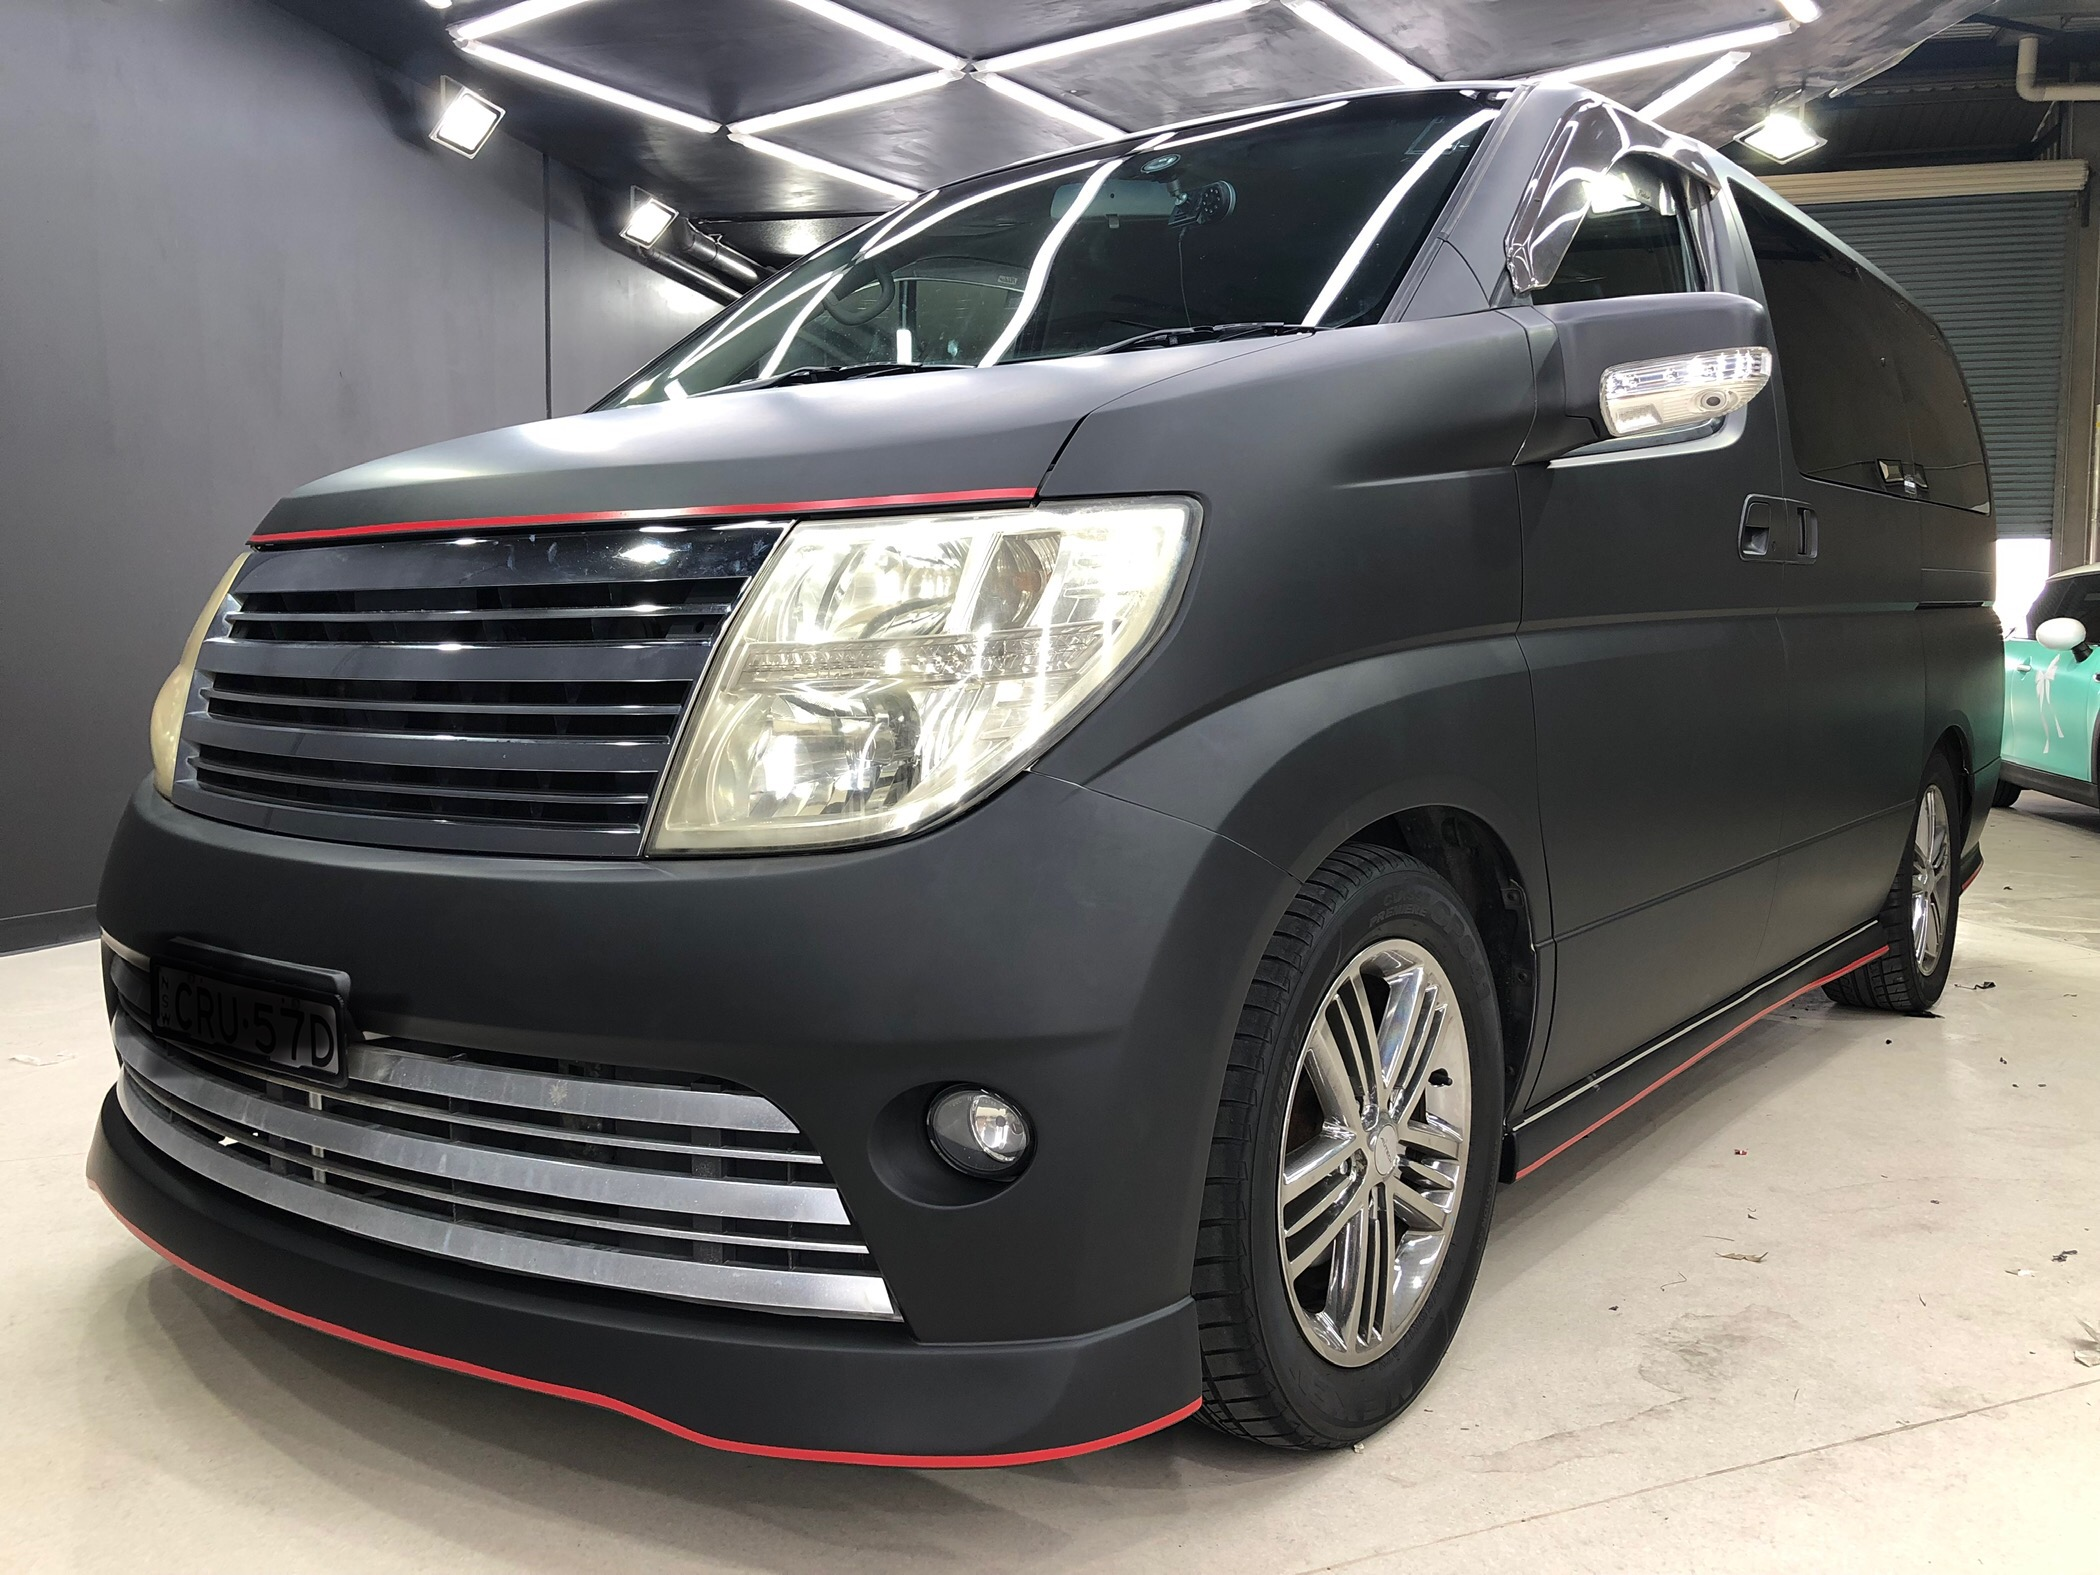 Picture of Kwok Leung's 2005 Nissan Elgrand